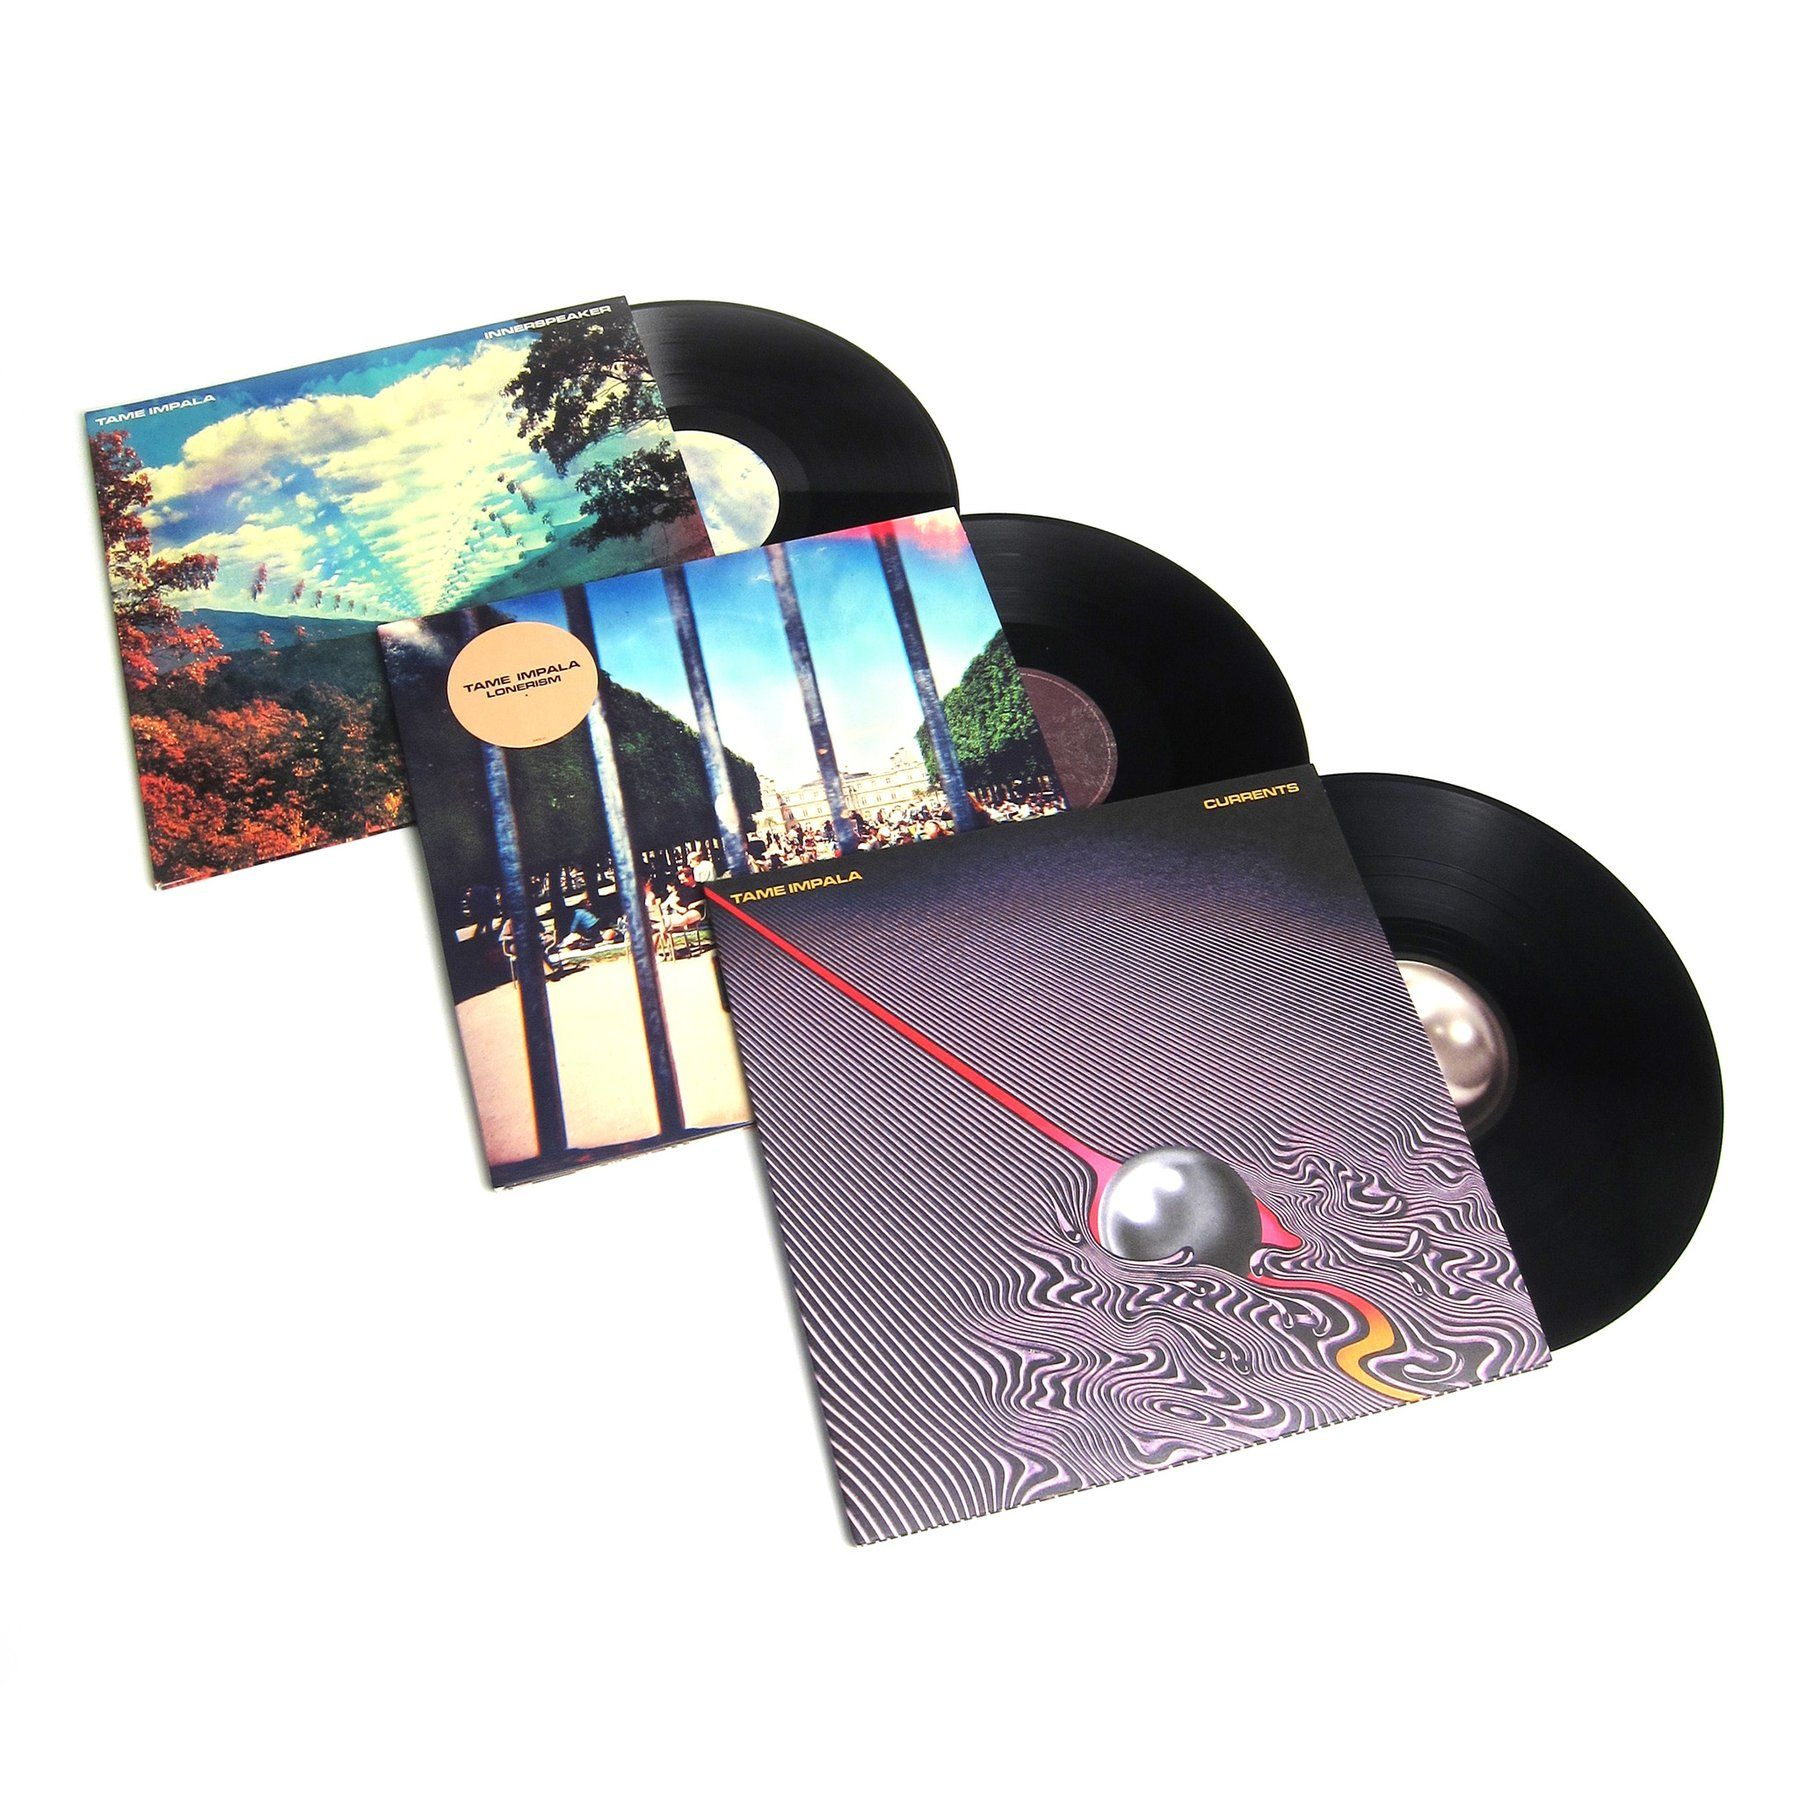 Buy Tame Impala: Vinyl LP Album Pack (Innerspeaker, Lonerism, Currents) at TurntableLab.com, a Better Music Store Experience since 1999.